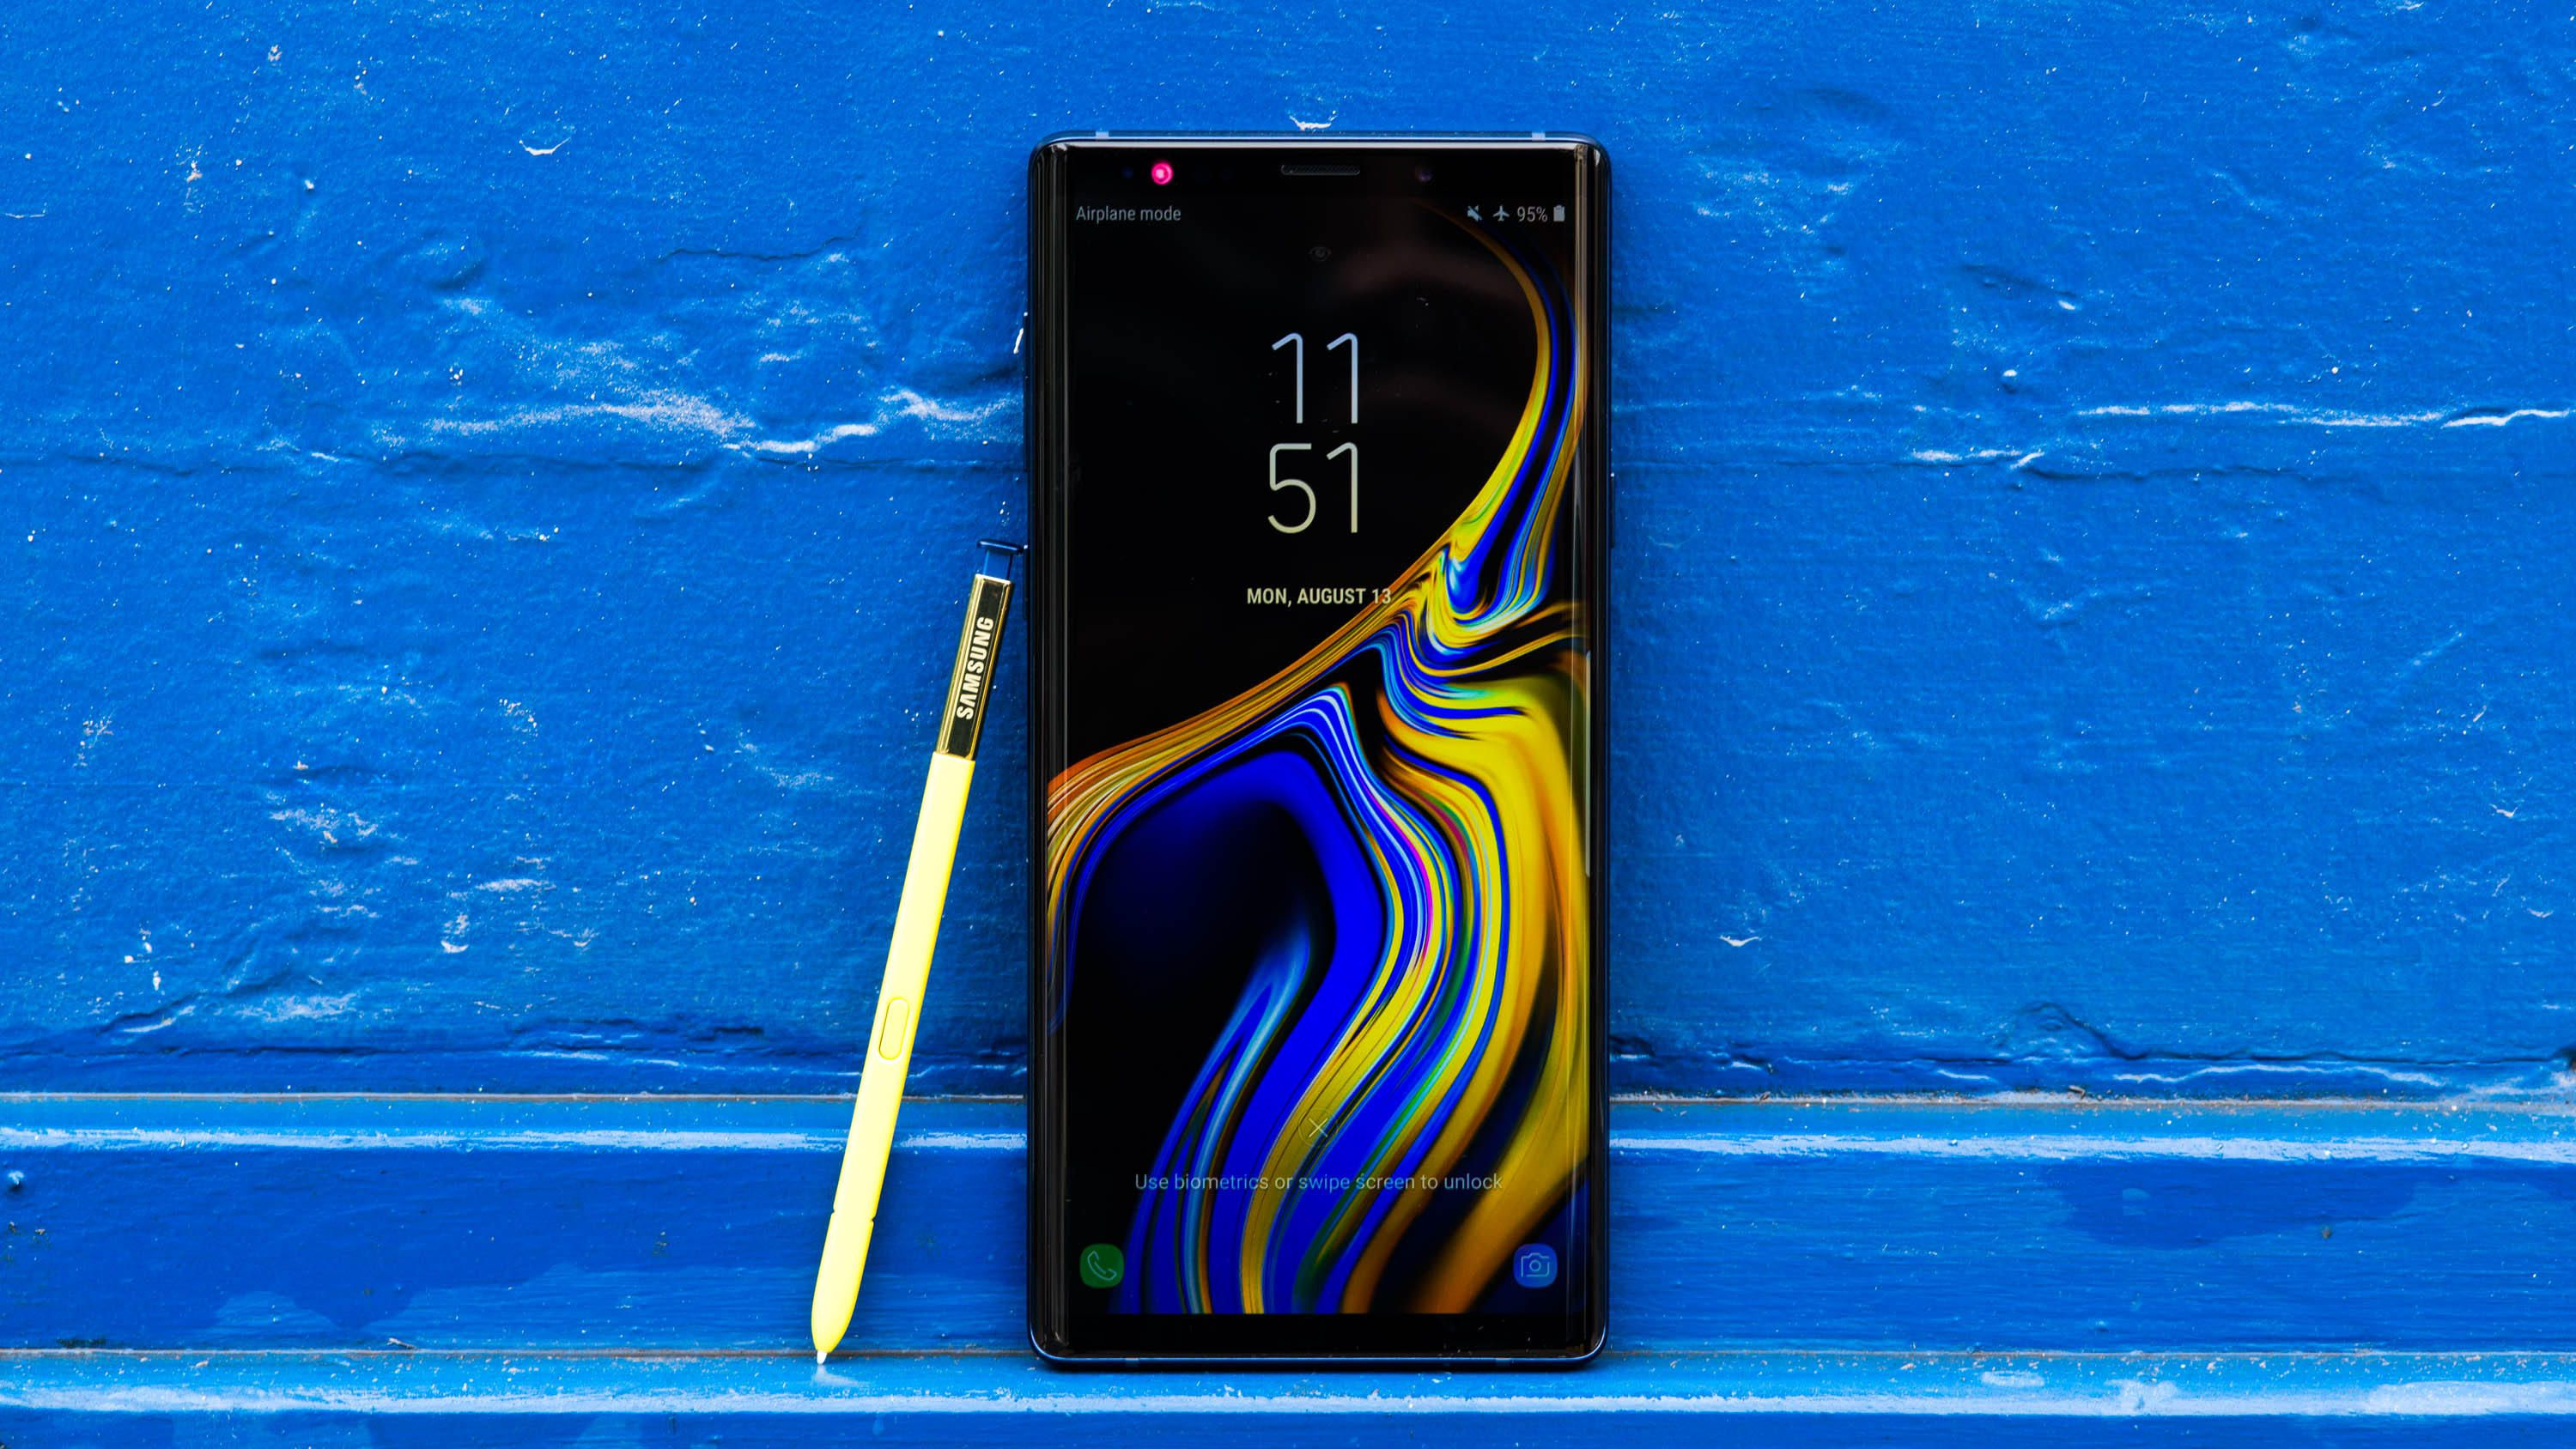 Samsung Galaxy Note 9 series gets a new update